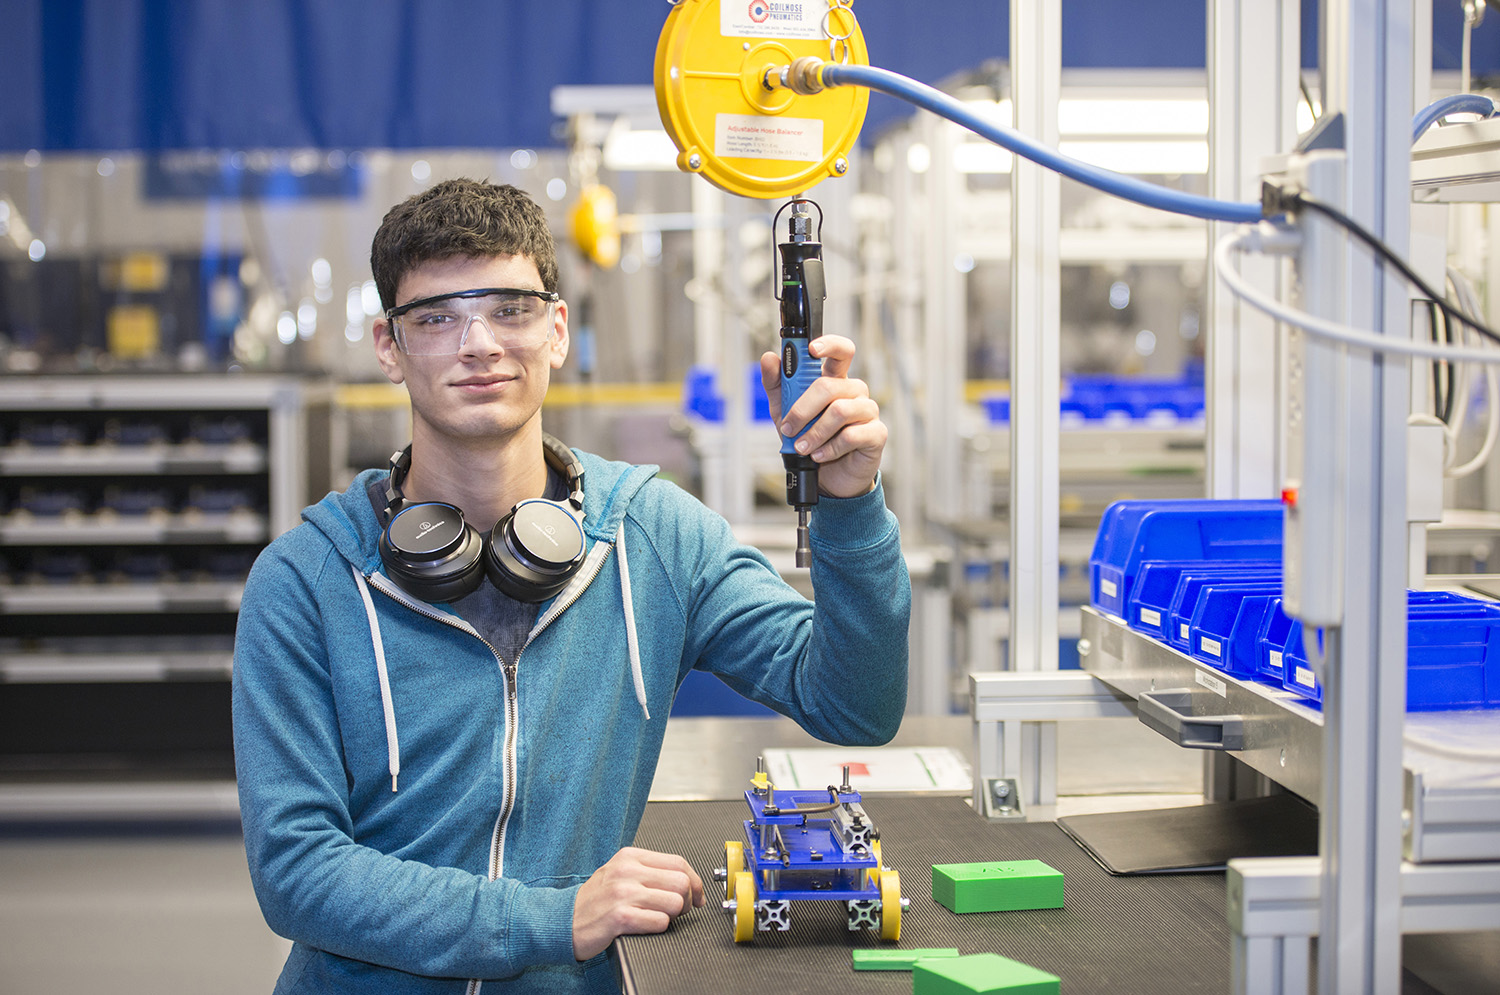 KCC student Devin Harook poses in the KAMA manufacturing training area of the RMTC.